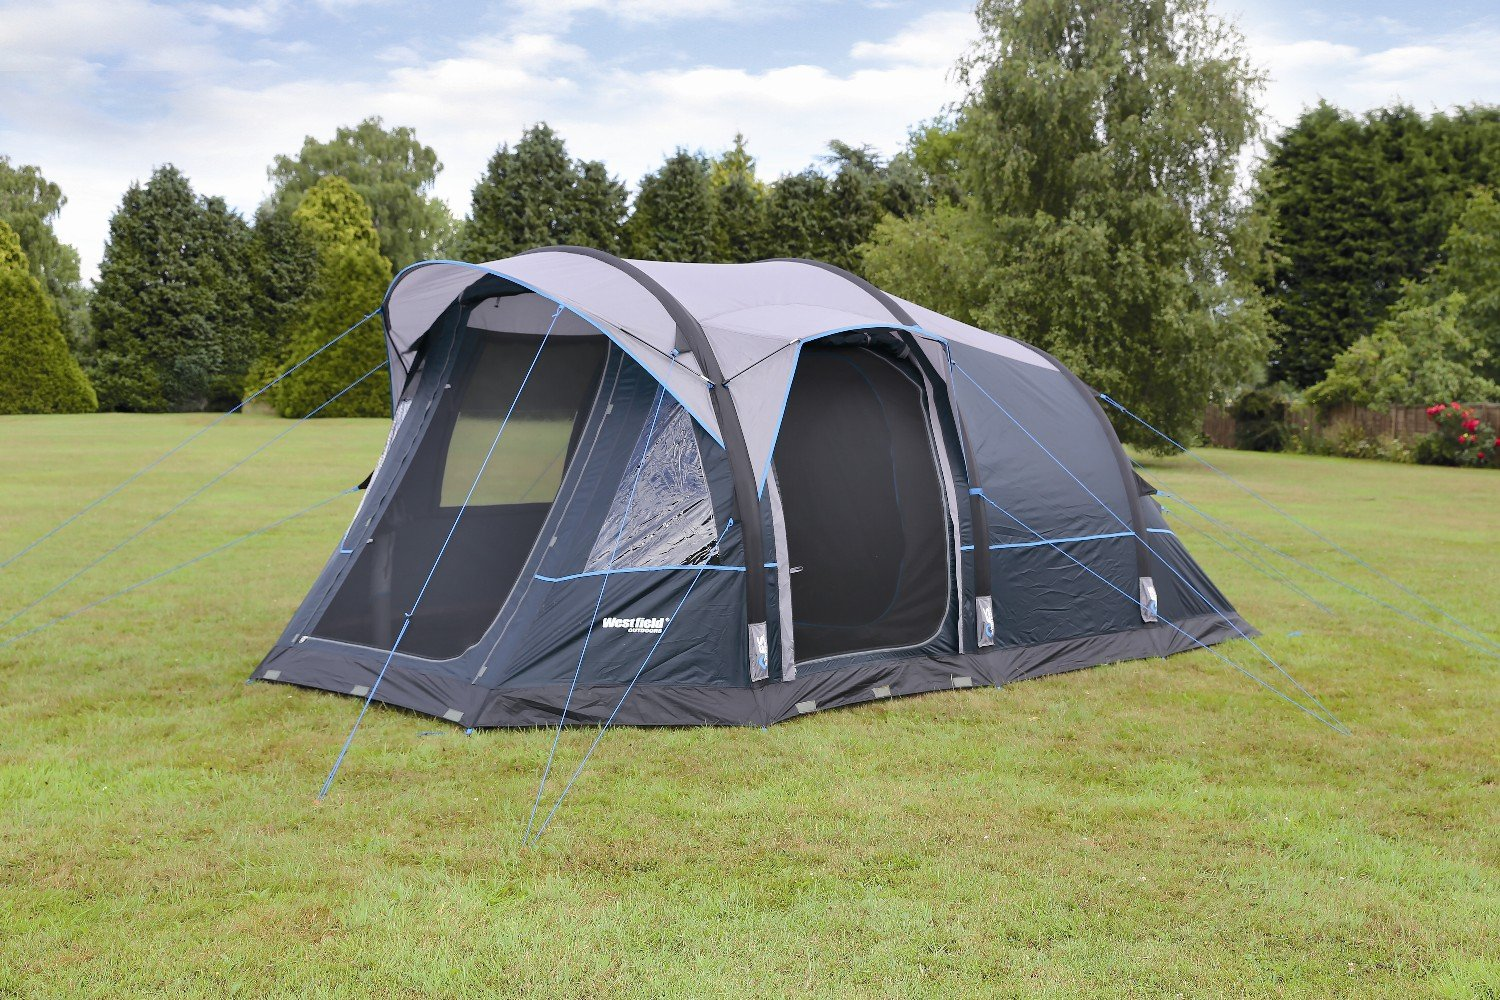 Travel Smart Orion 4 Inflatable Air Tent Amazon.co.uk Sports u0026 Outdoors & Travel Smart Orion 4 Inflatable Air Tent: Amazon.co.uk: Sports ...